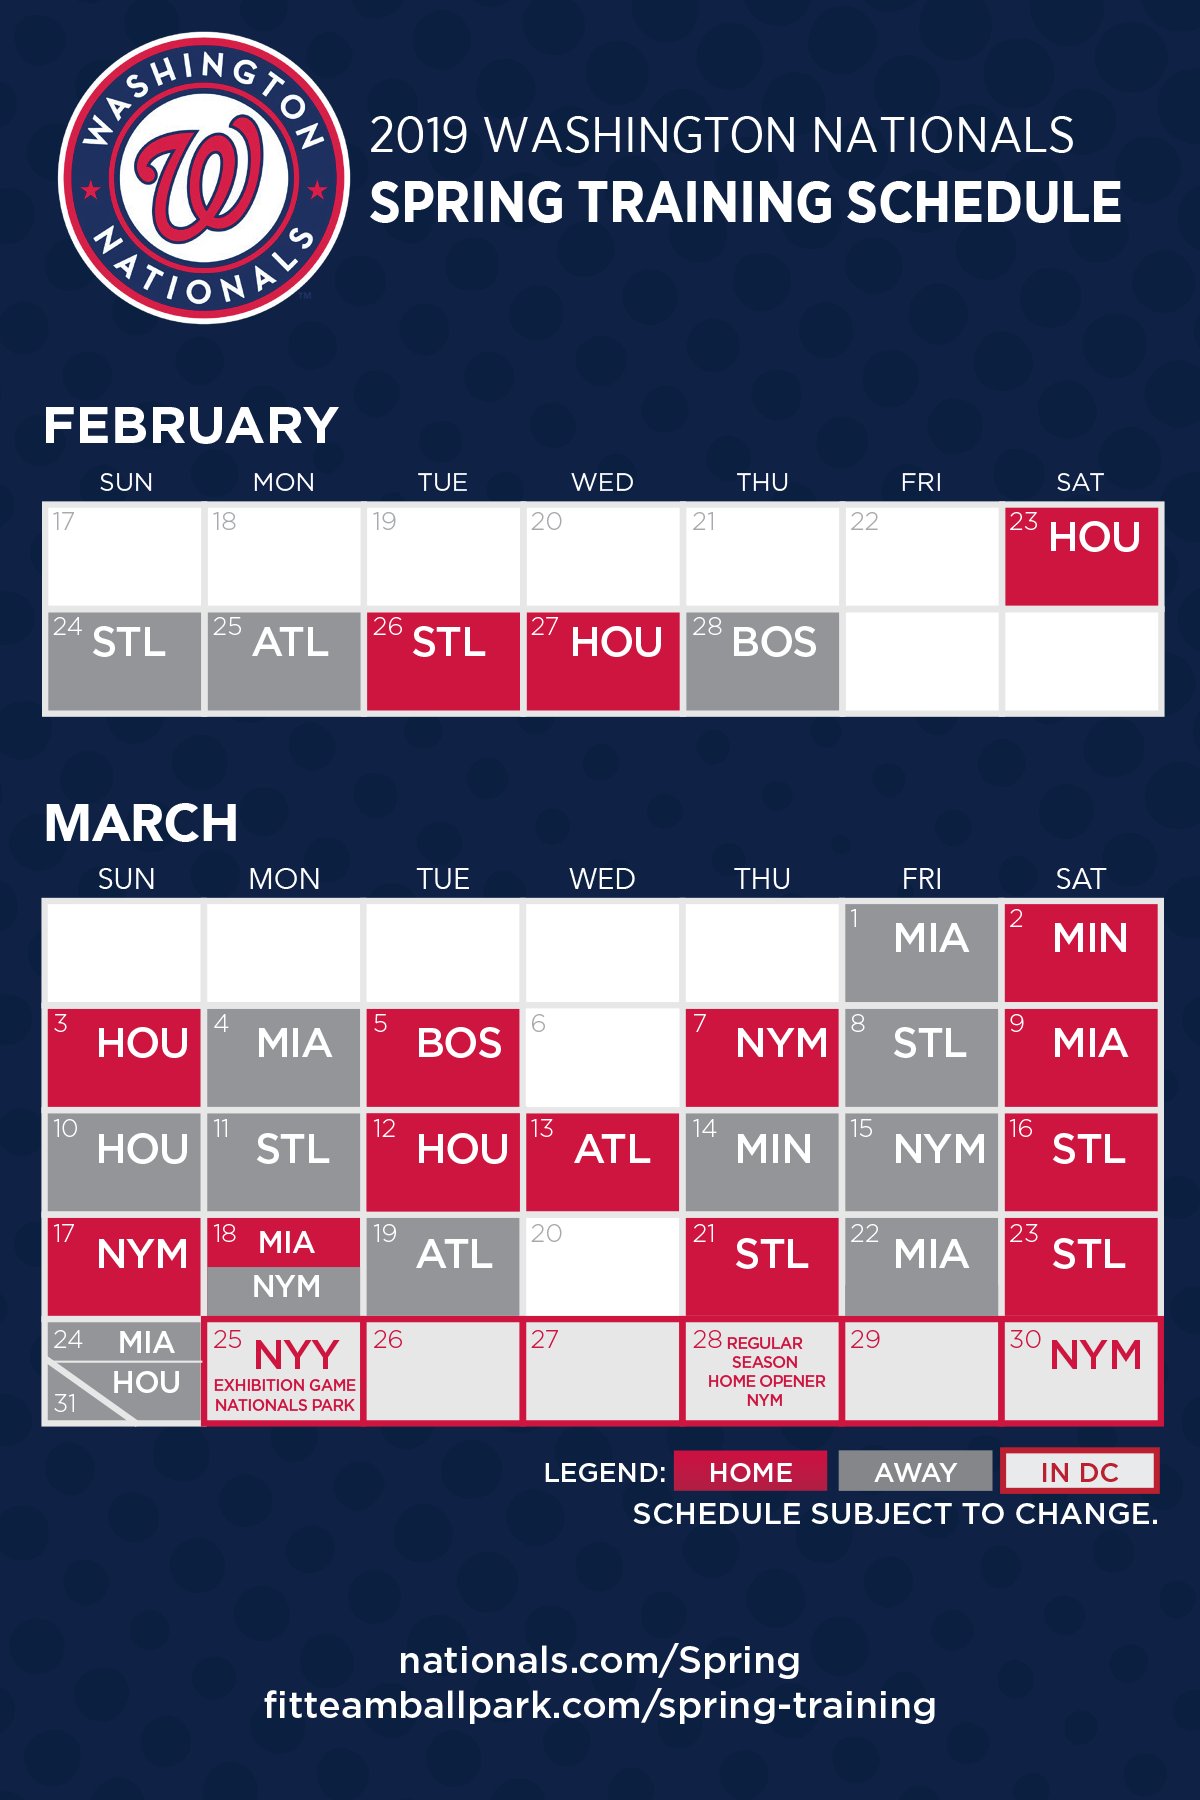 Washington Nationals 2019 Schedule Nationals announce 2019 Spring Training Schedule   Curly W Live